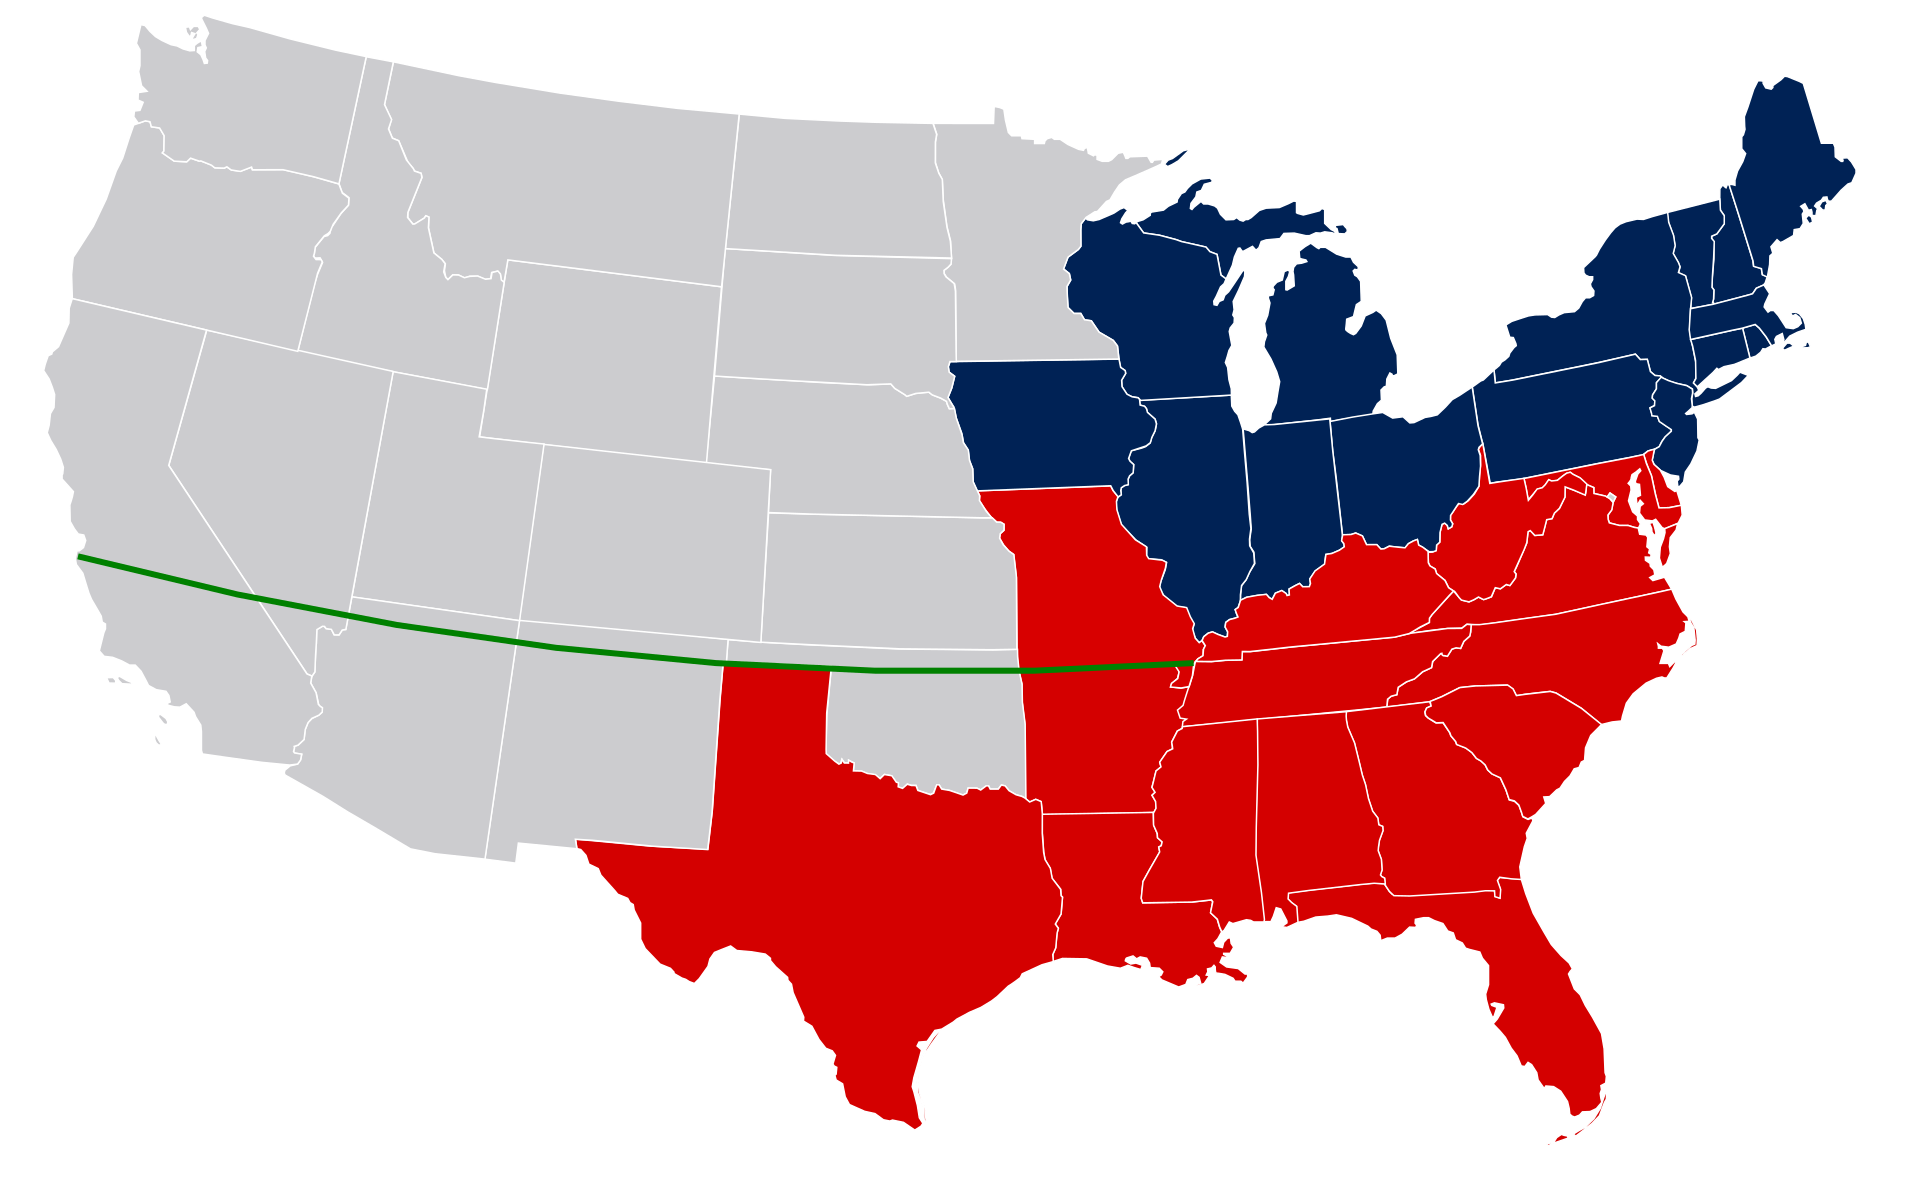 The Missouri Compromise line runs through the far northern parts of Oklahoma, New Mexico and Arizona, the far southern part of Nevada, and right through the middle of California